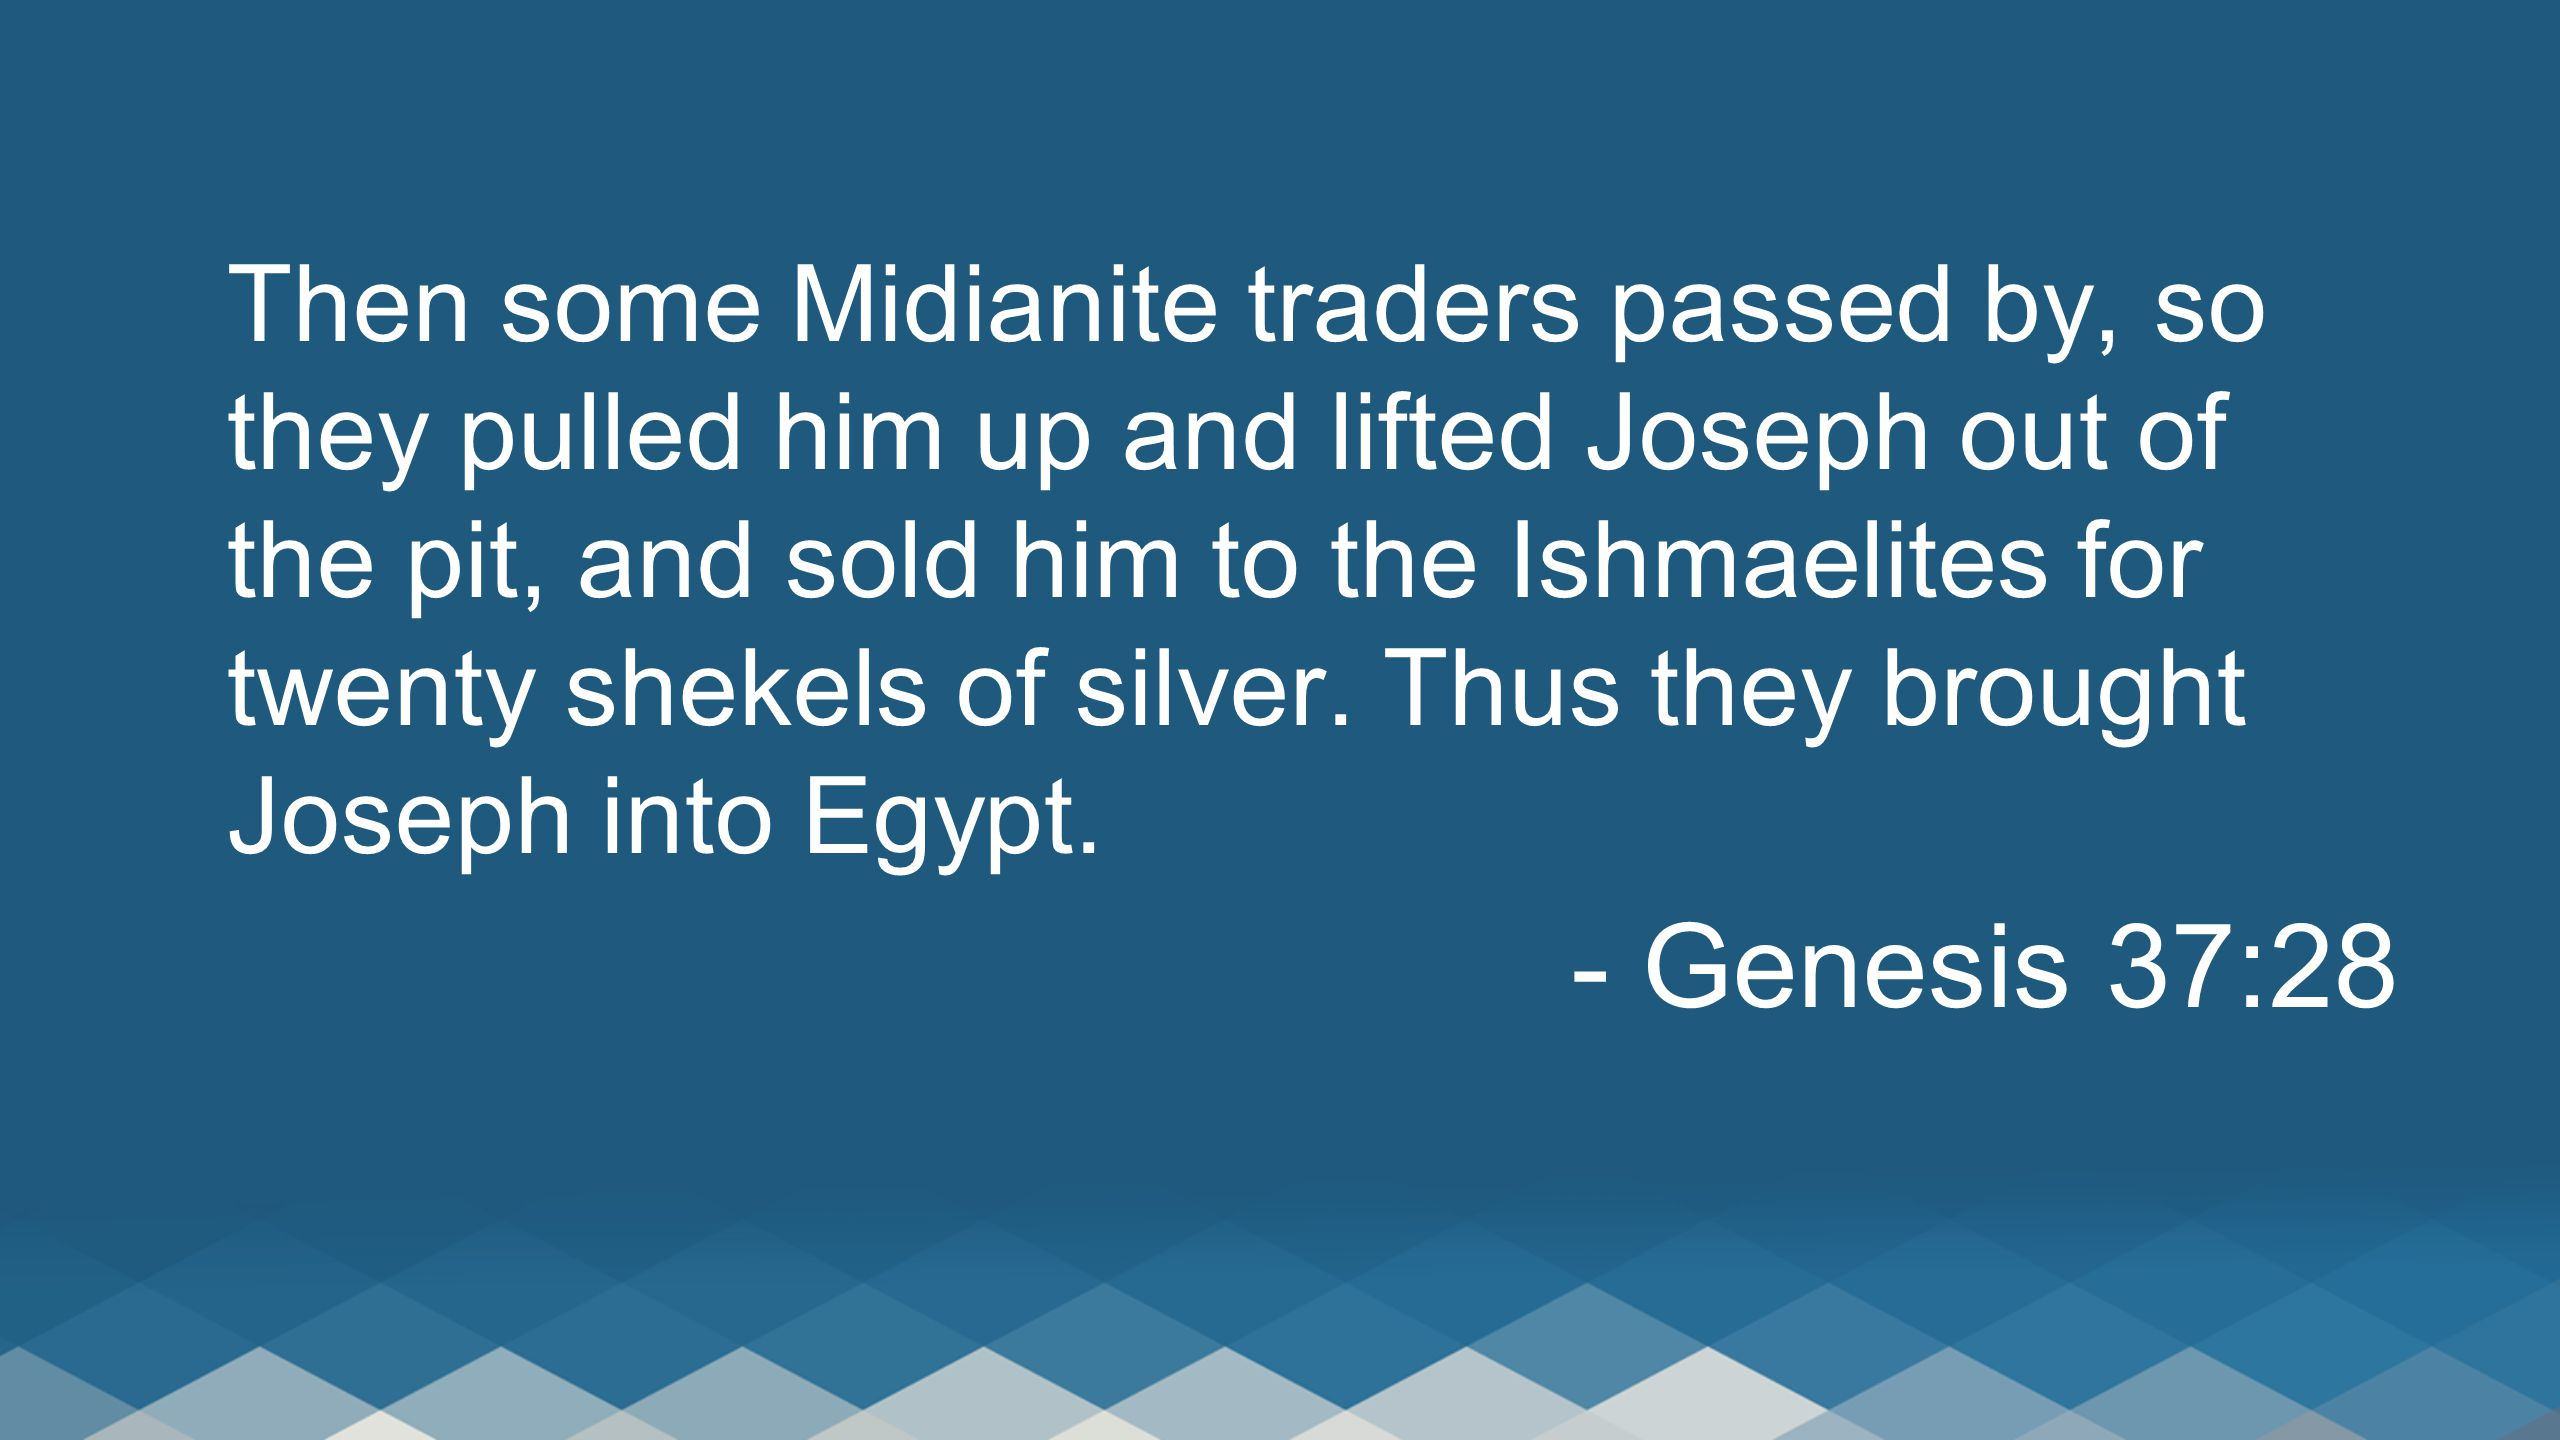 Then some Midianite traders passed by, so they pulled him up and lifted Joseph out of the pit, and sold him to the Ishmaelites for twenty shekels of silver.